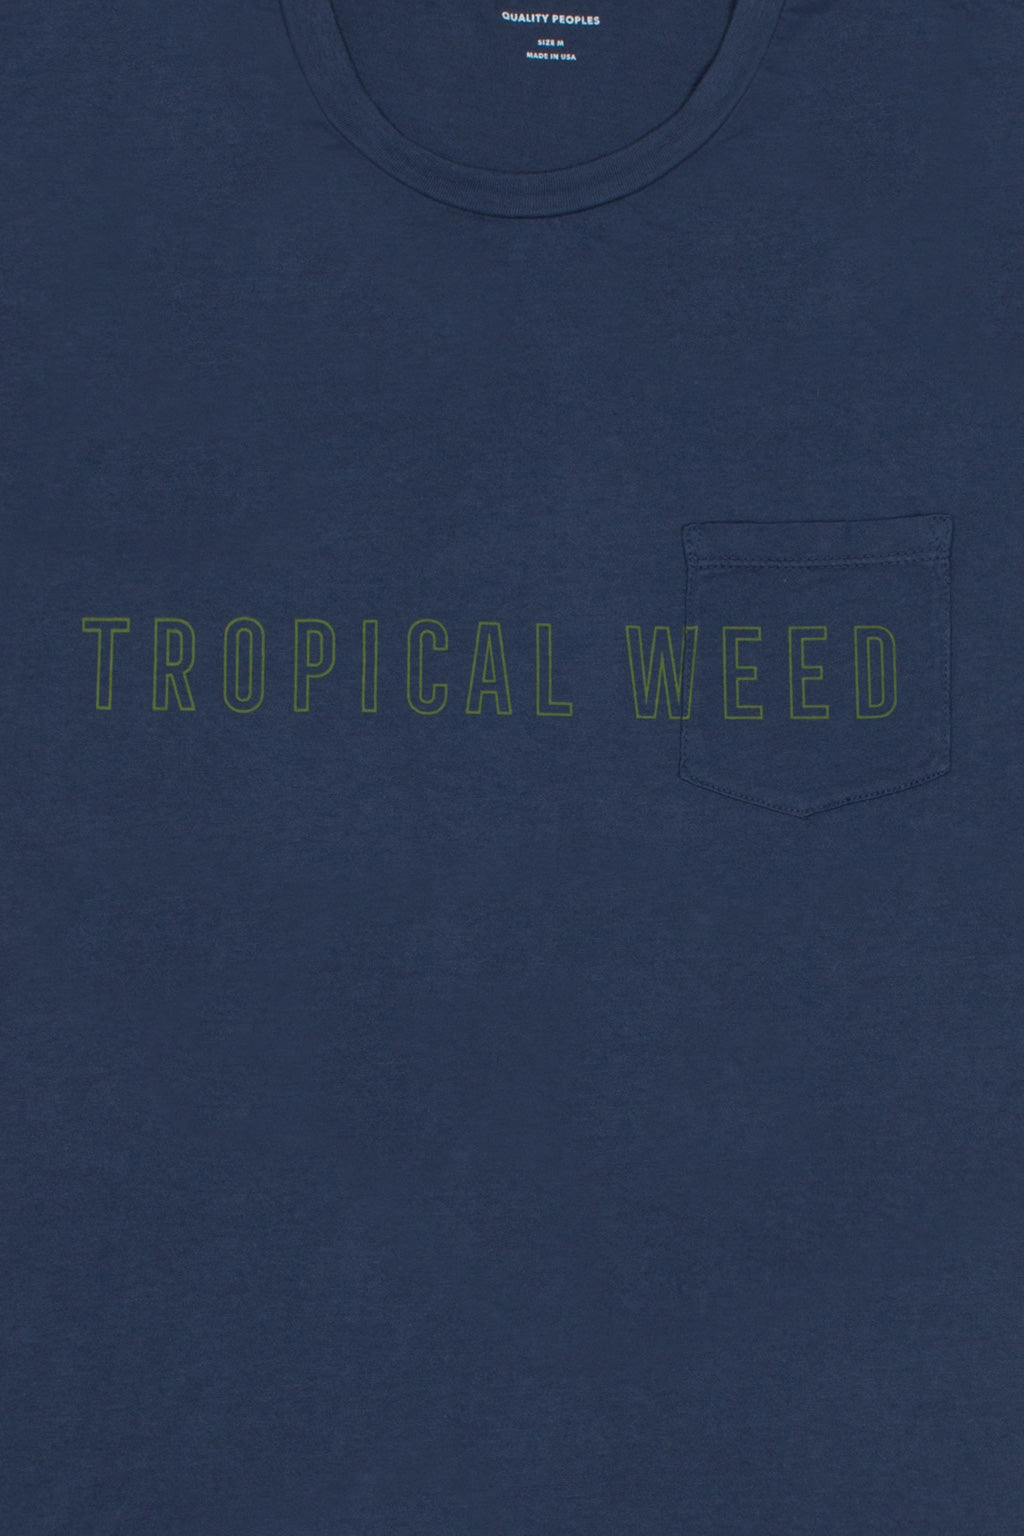 Quality Peoples Unisex Pocket T-Shirt Tropical Weed Dark Navy Front Detail